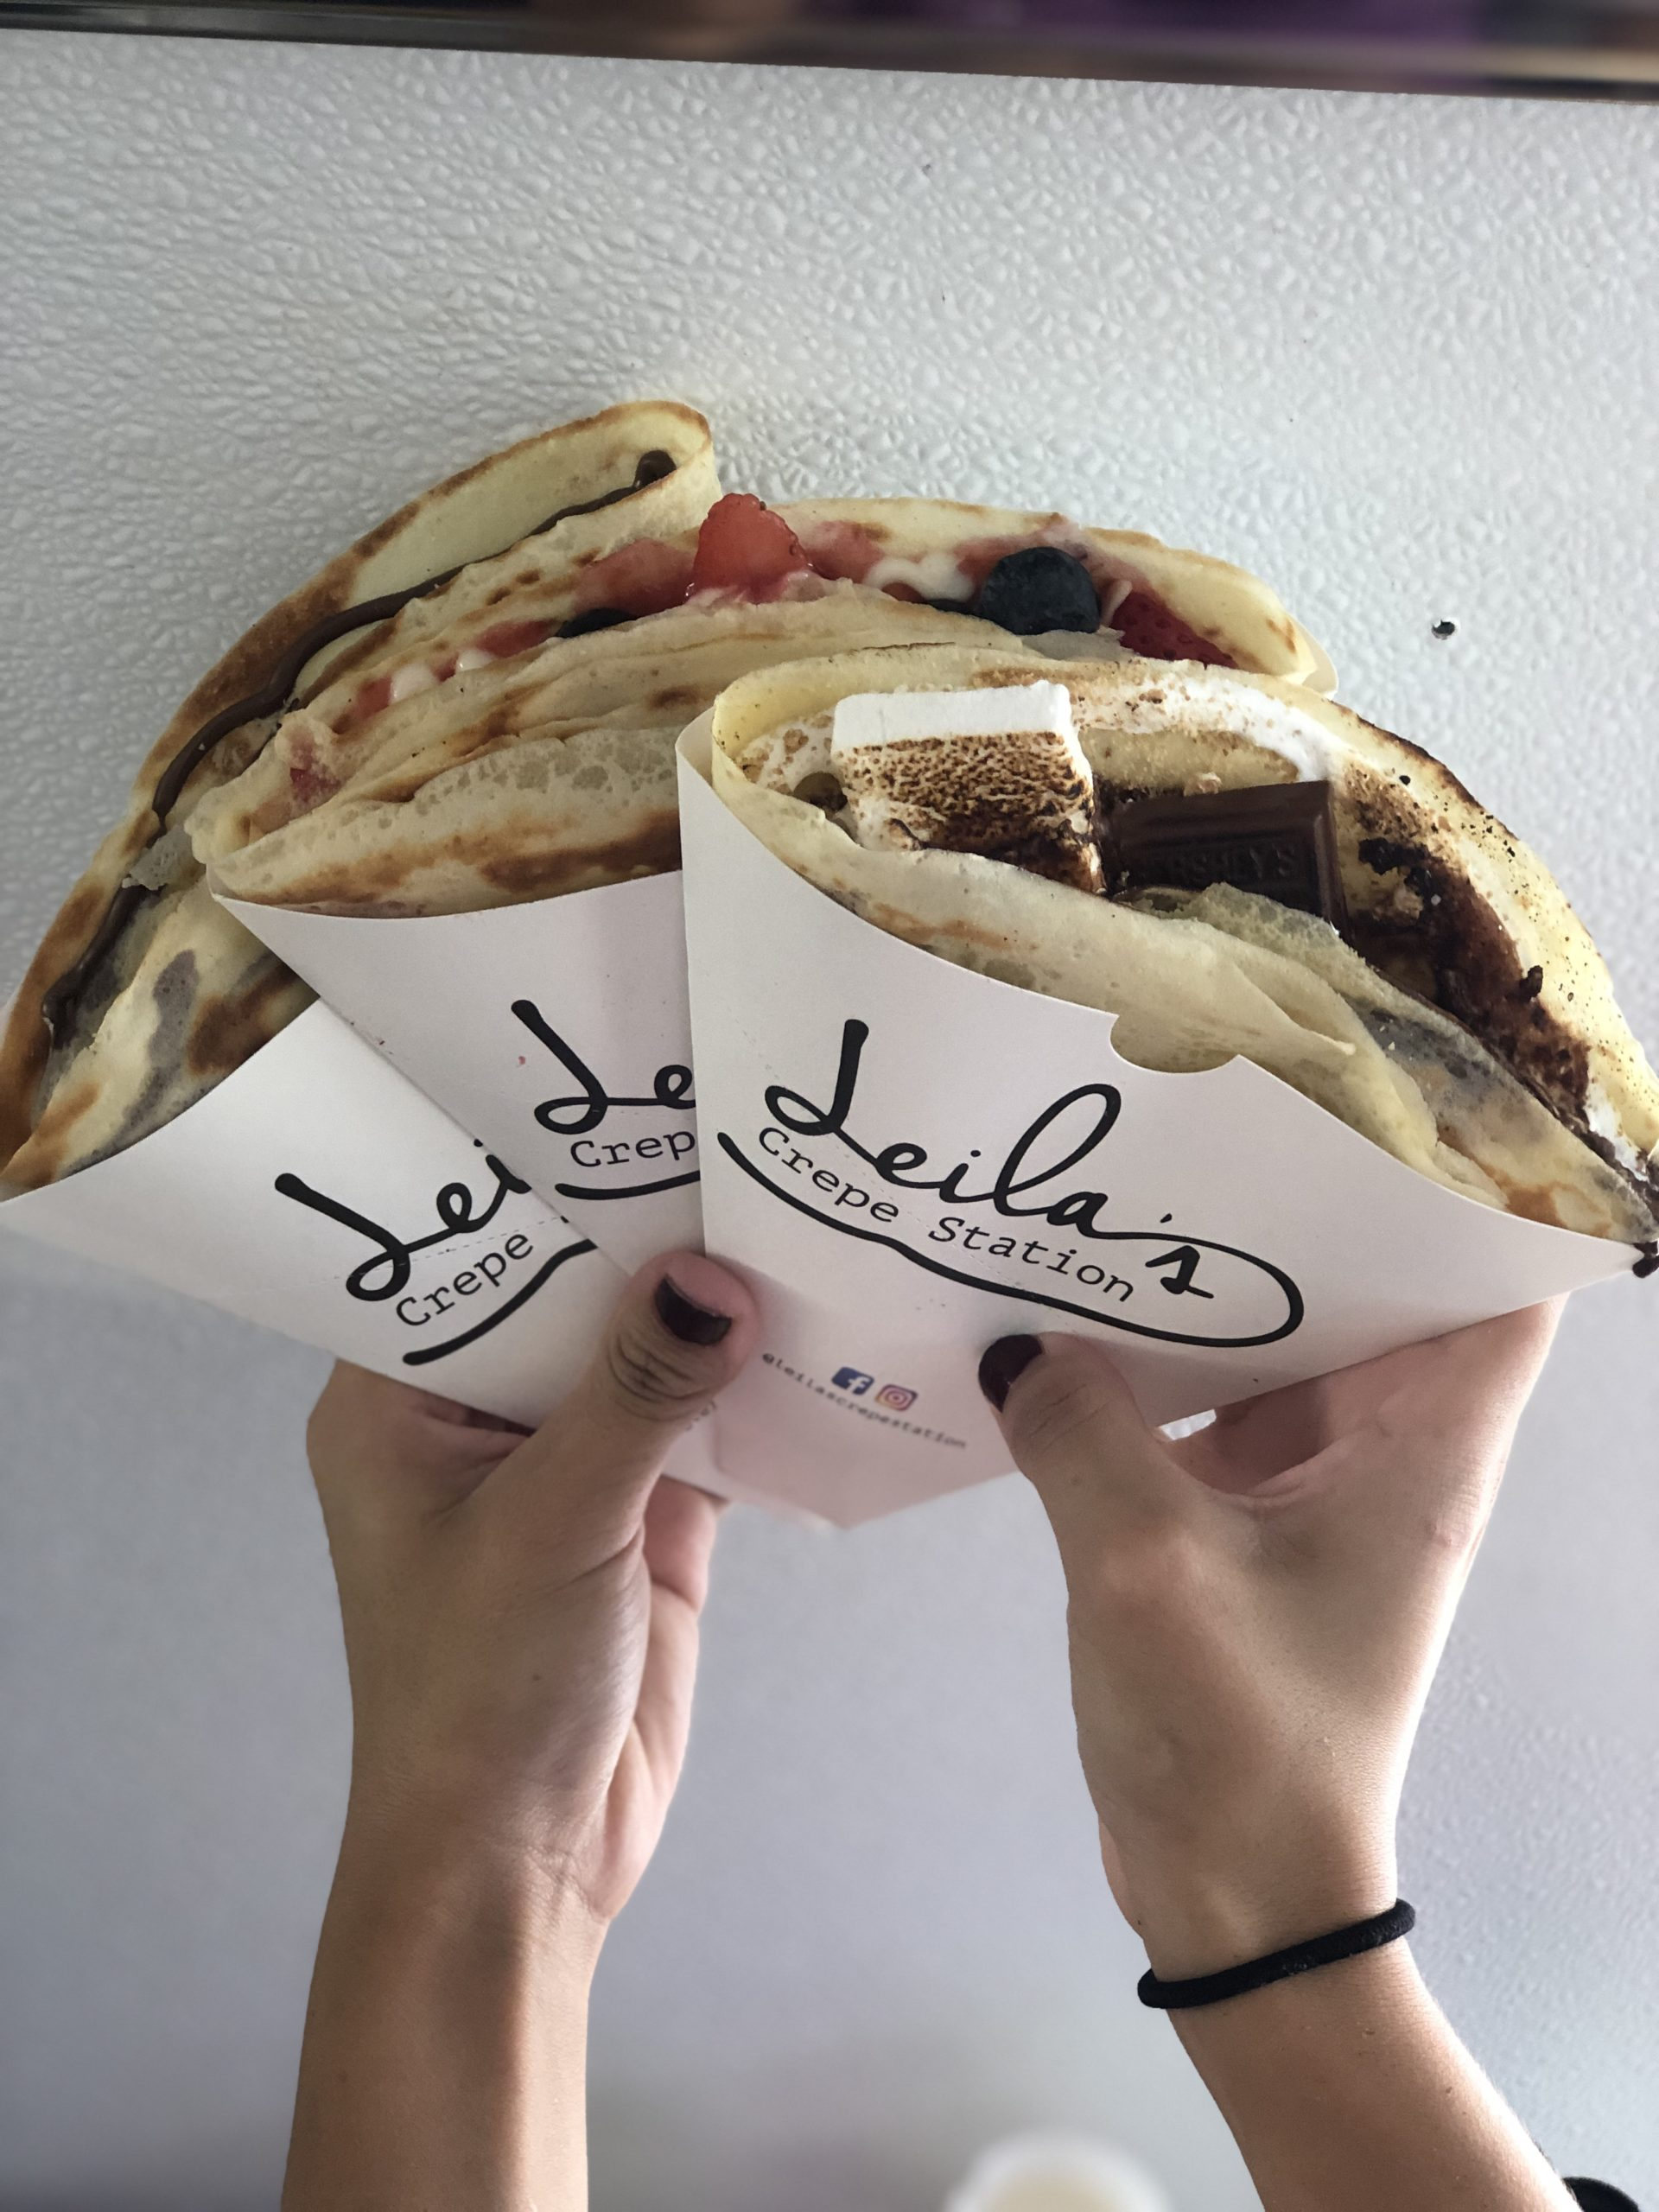 Sweet and savory crepes food truck